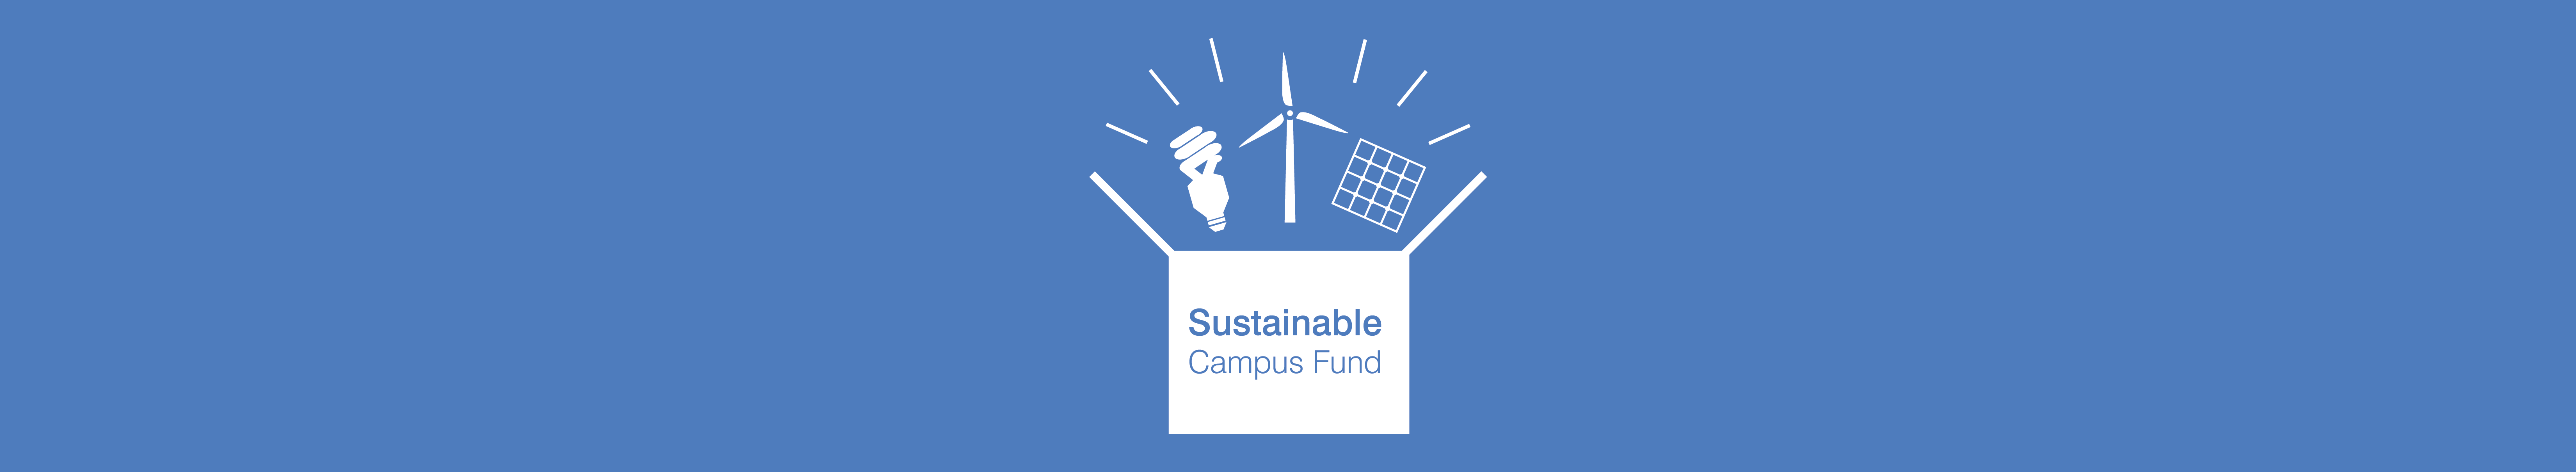 Sustainable Campus Fund - box with wind turbine, bulb and solar panel bursting out